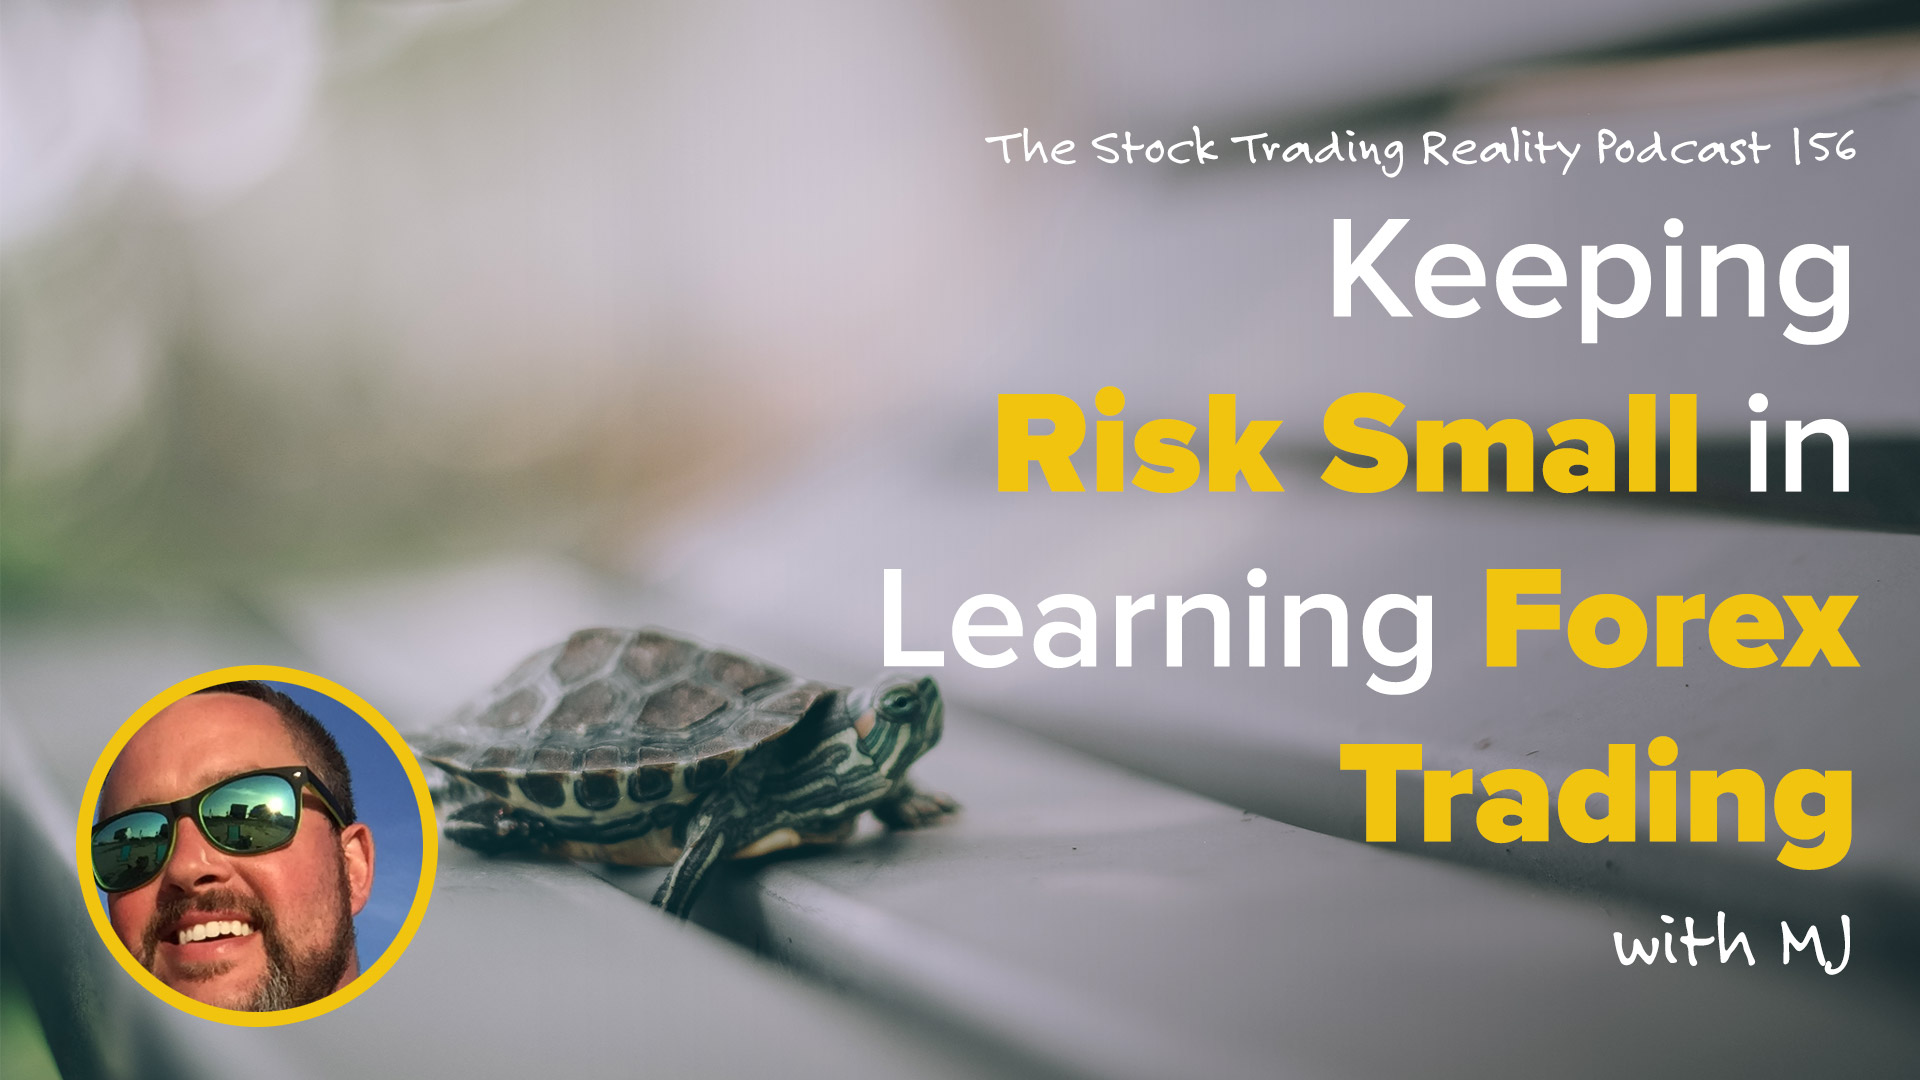 STR 156: Keeping Risk Small in Learning Forex Trading